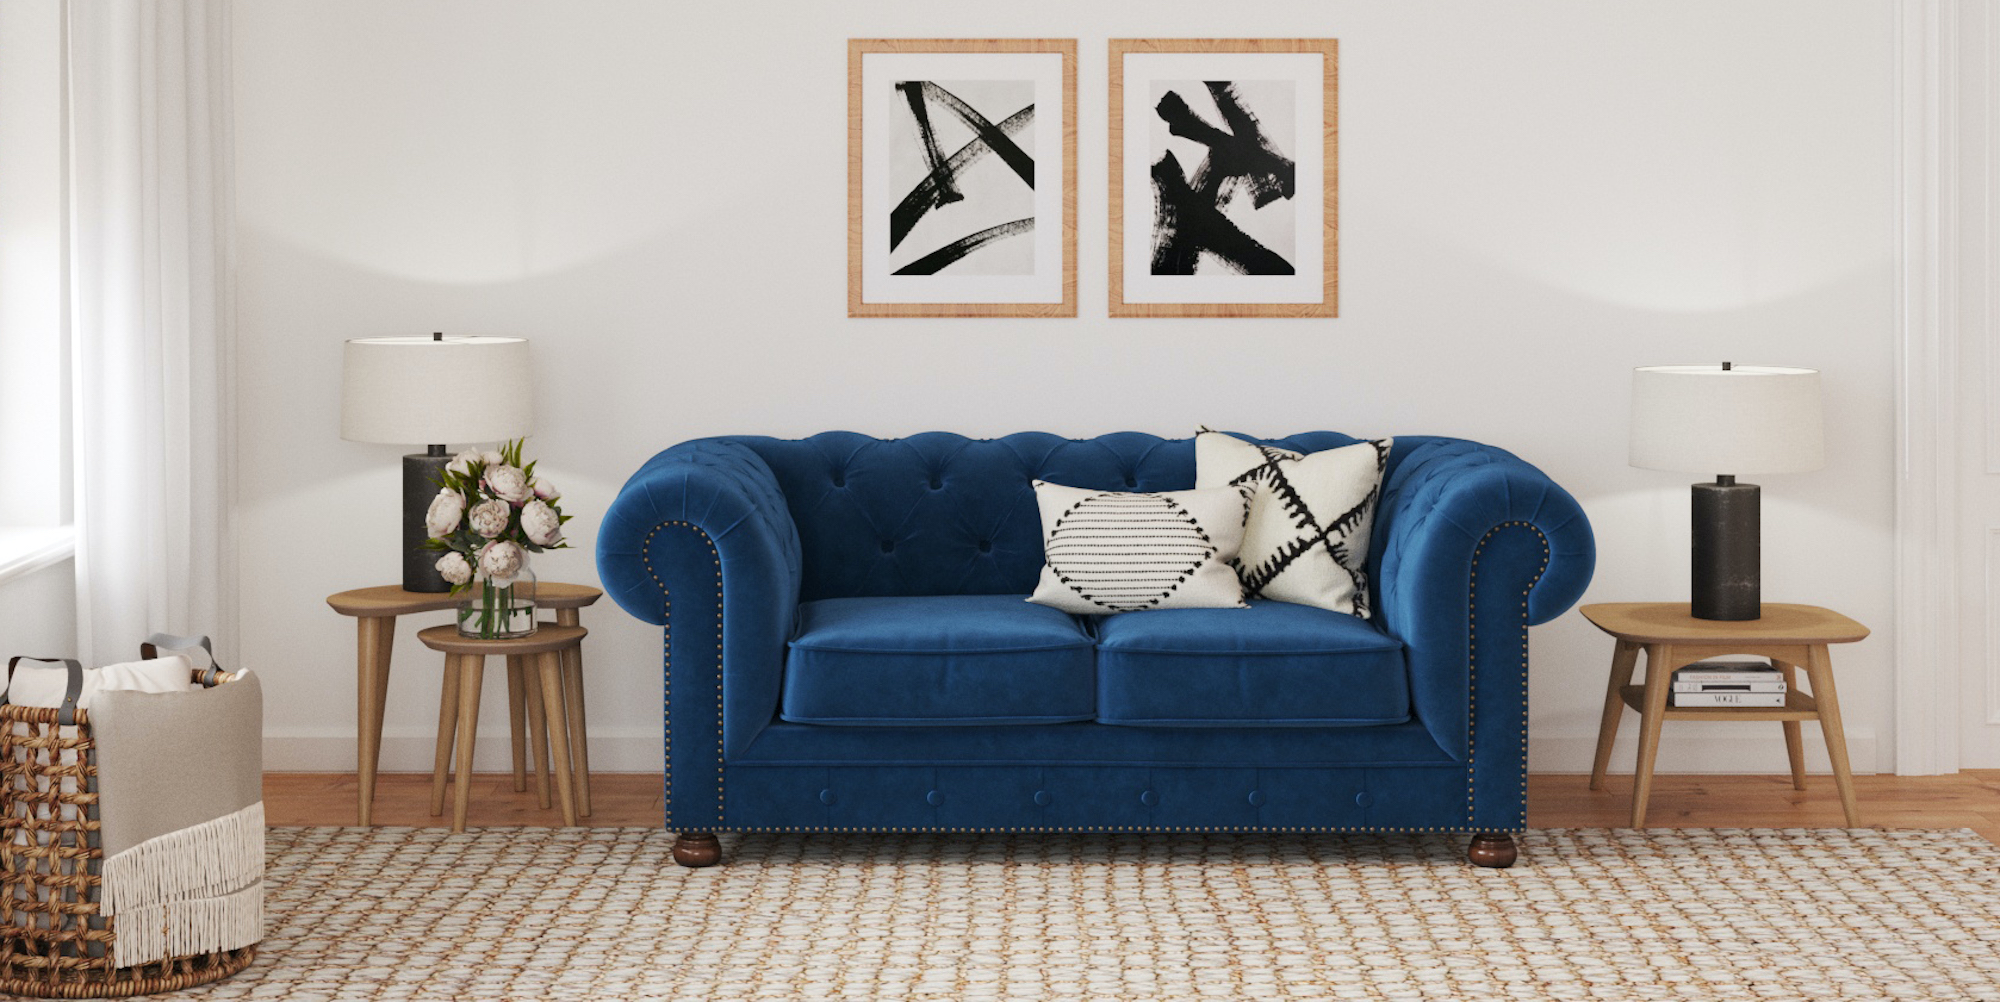 Brosa Notting Hill Velvet Chesterfield 2 Seater Sofa styled in classic traditional living room